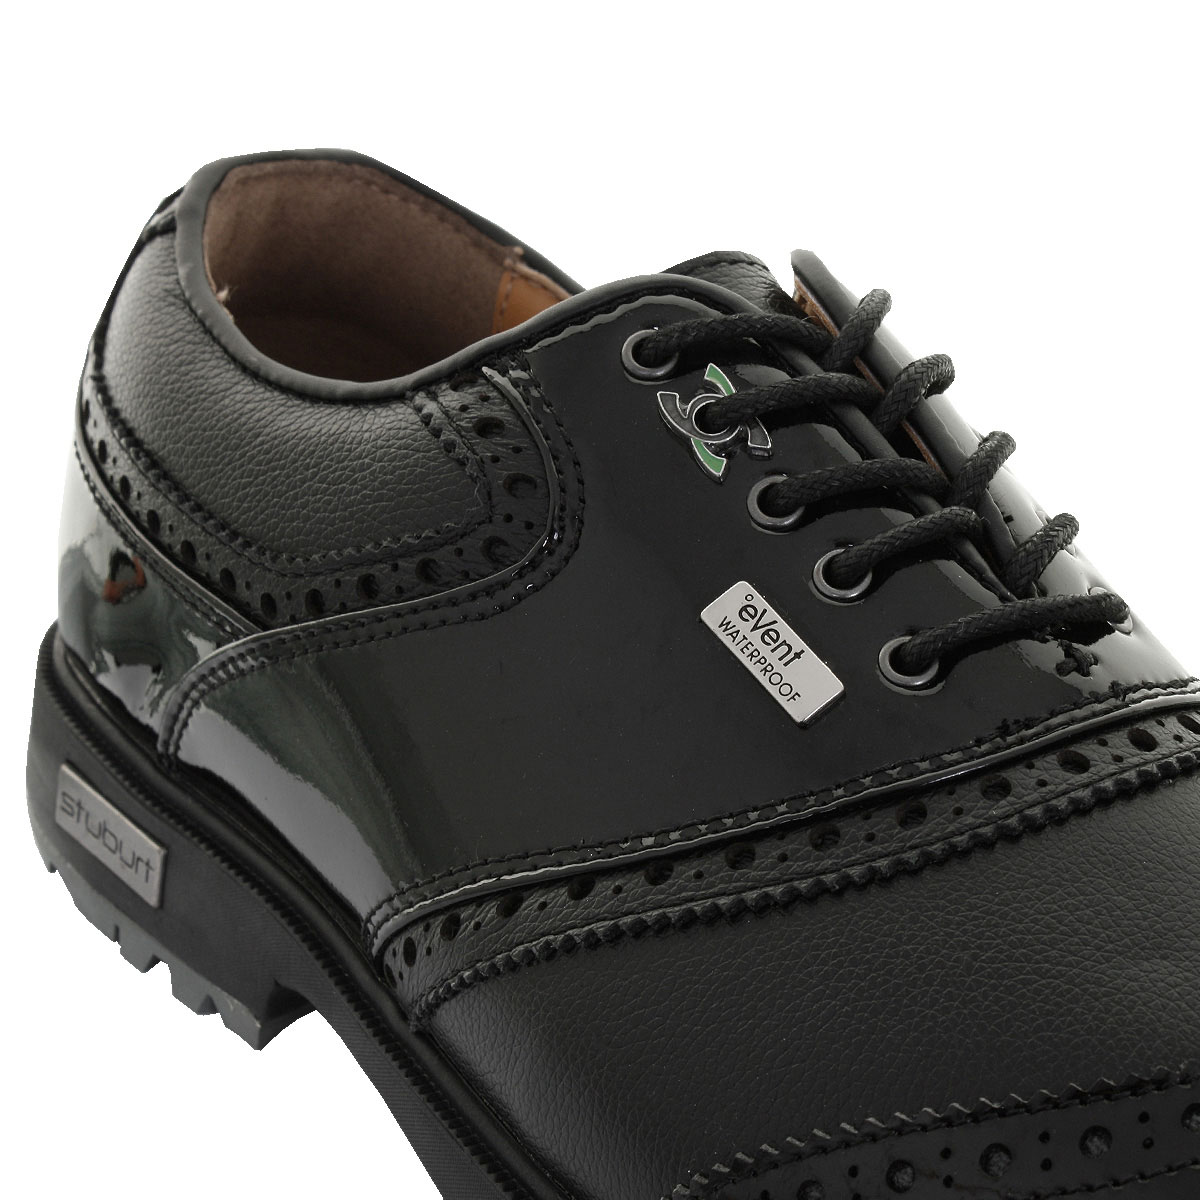 Stuburt Golf Shoes Uk